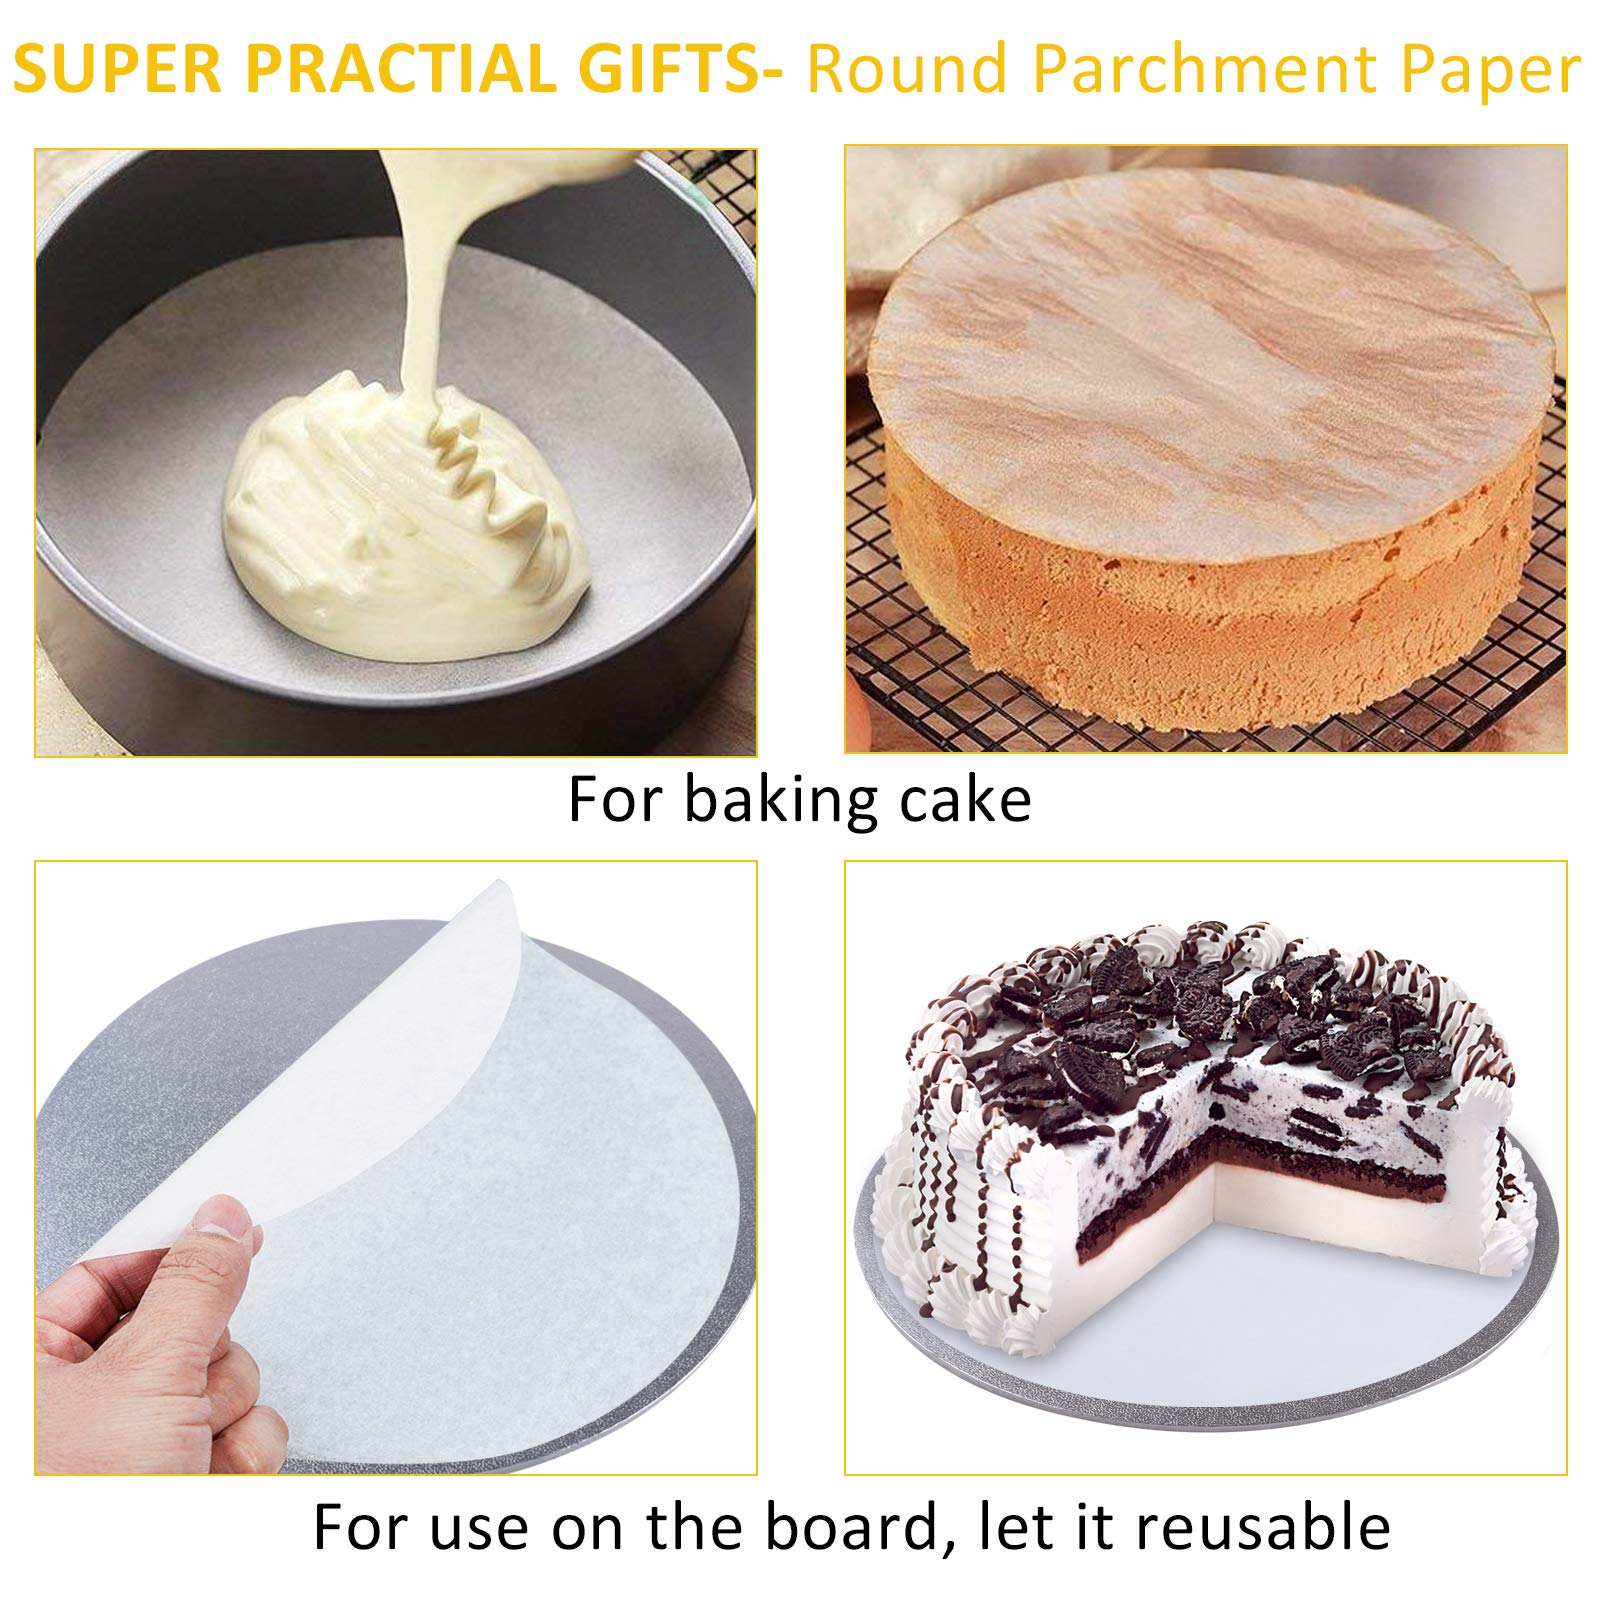 Bonviee Cake Drum, Sliver Round Cake Board 8 Inch 5mm Thickness Cake Circle Base Cardboard Grease Proof for Presenting Decorated Cakes (2 Pack)